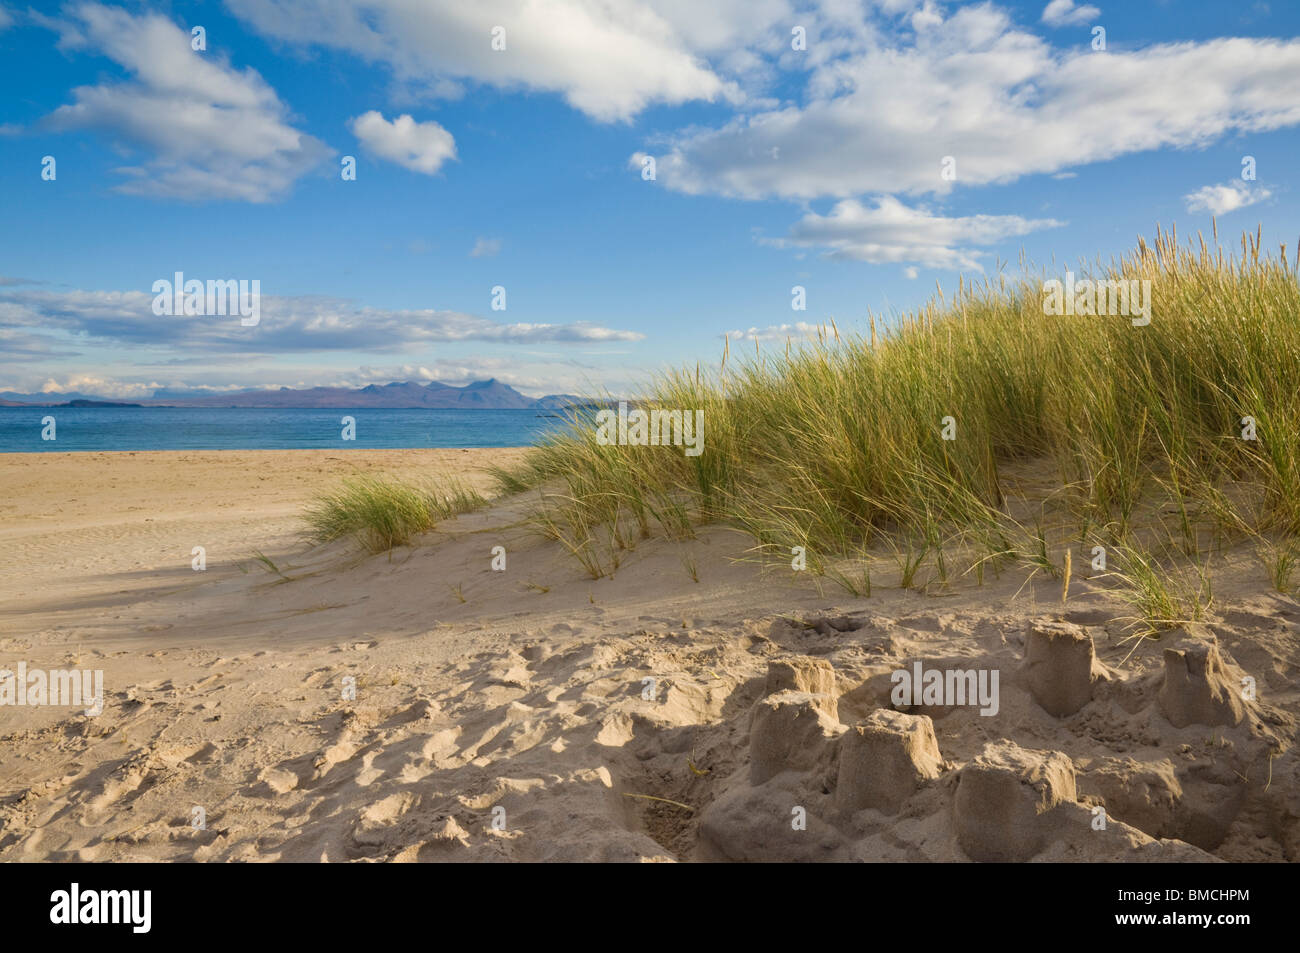 A sand castle in the sand dunes and dune grasses of Mellon Udrigle beach, Wester Ross, north west Scotland, UK, - Stock Image